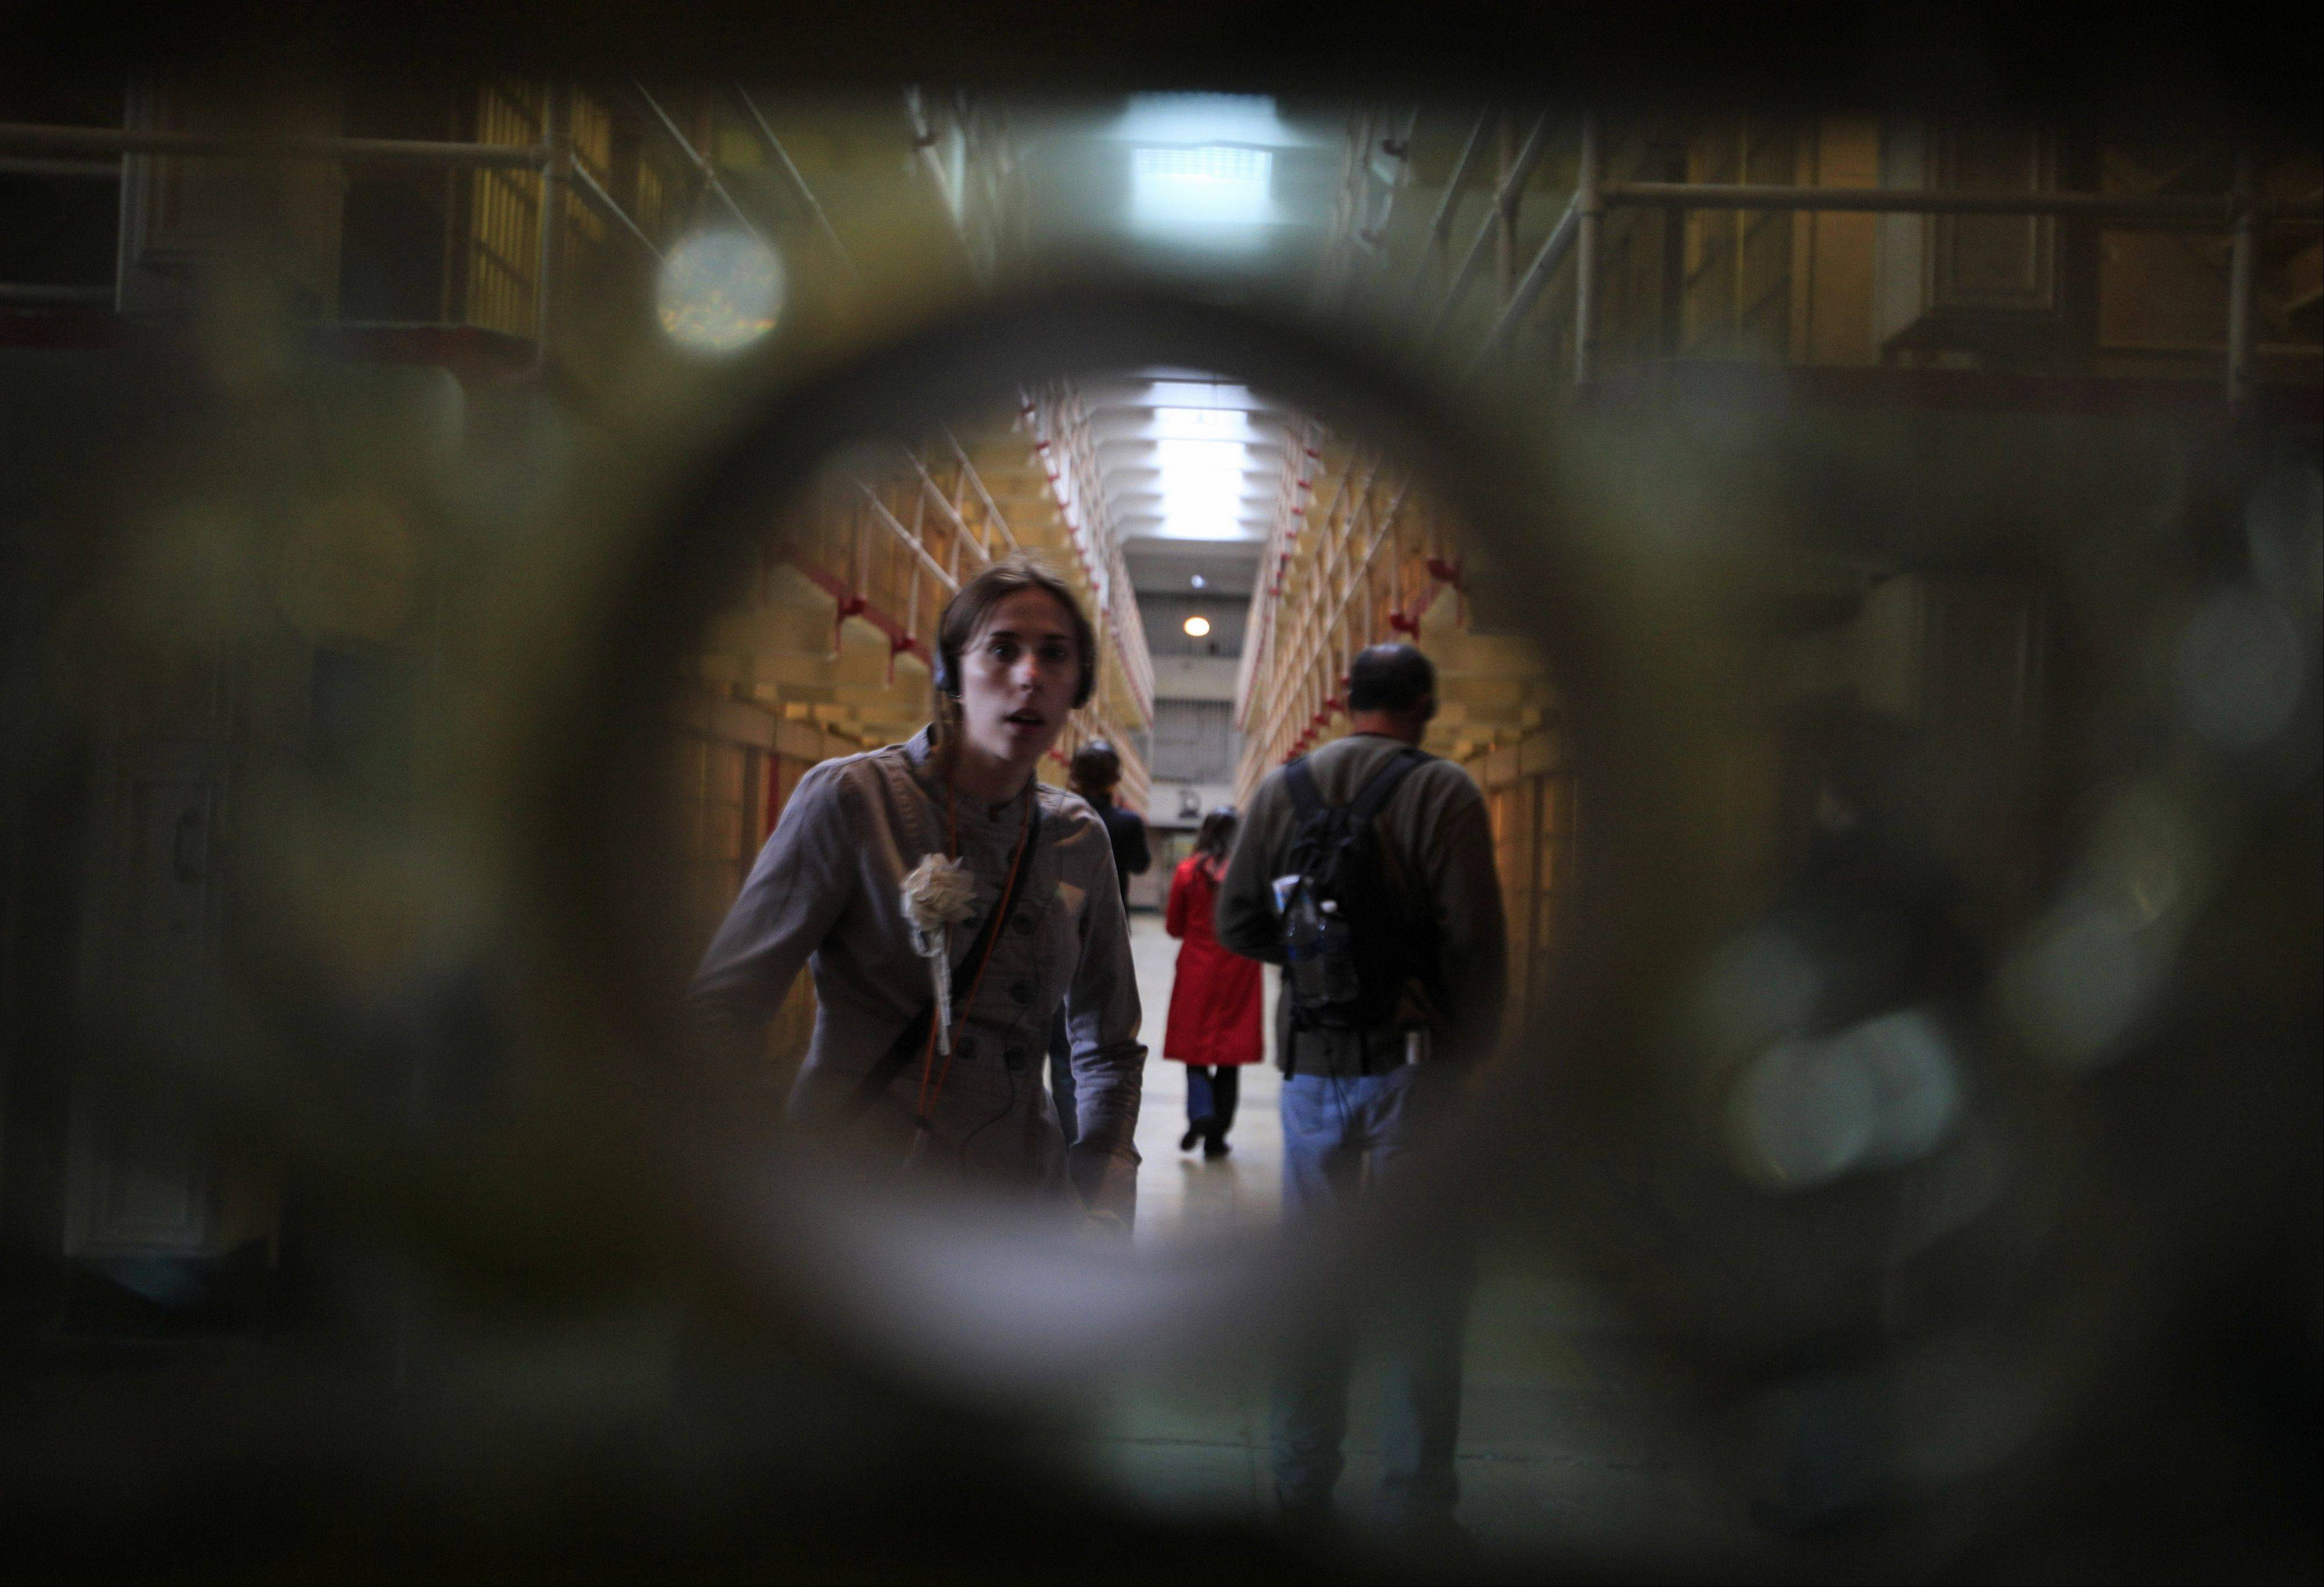 A woman looks through a hole and bulletproof glass into a visitation area. Most of the more than 1 million tourists who visit the famous former prison never get to experience Alcatraz at night or see its spooky, decrepit hospital.